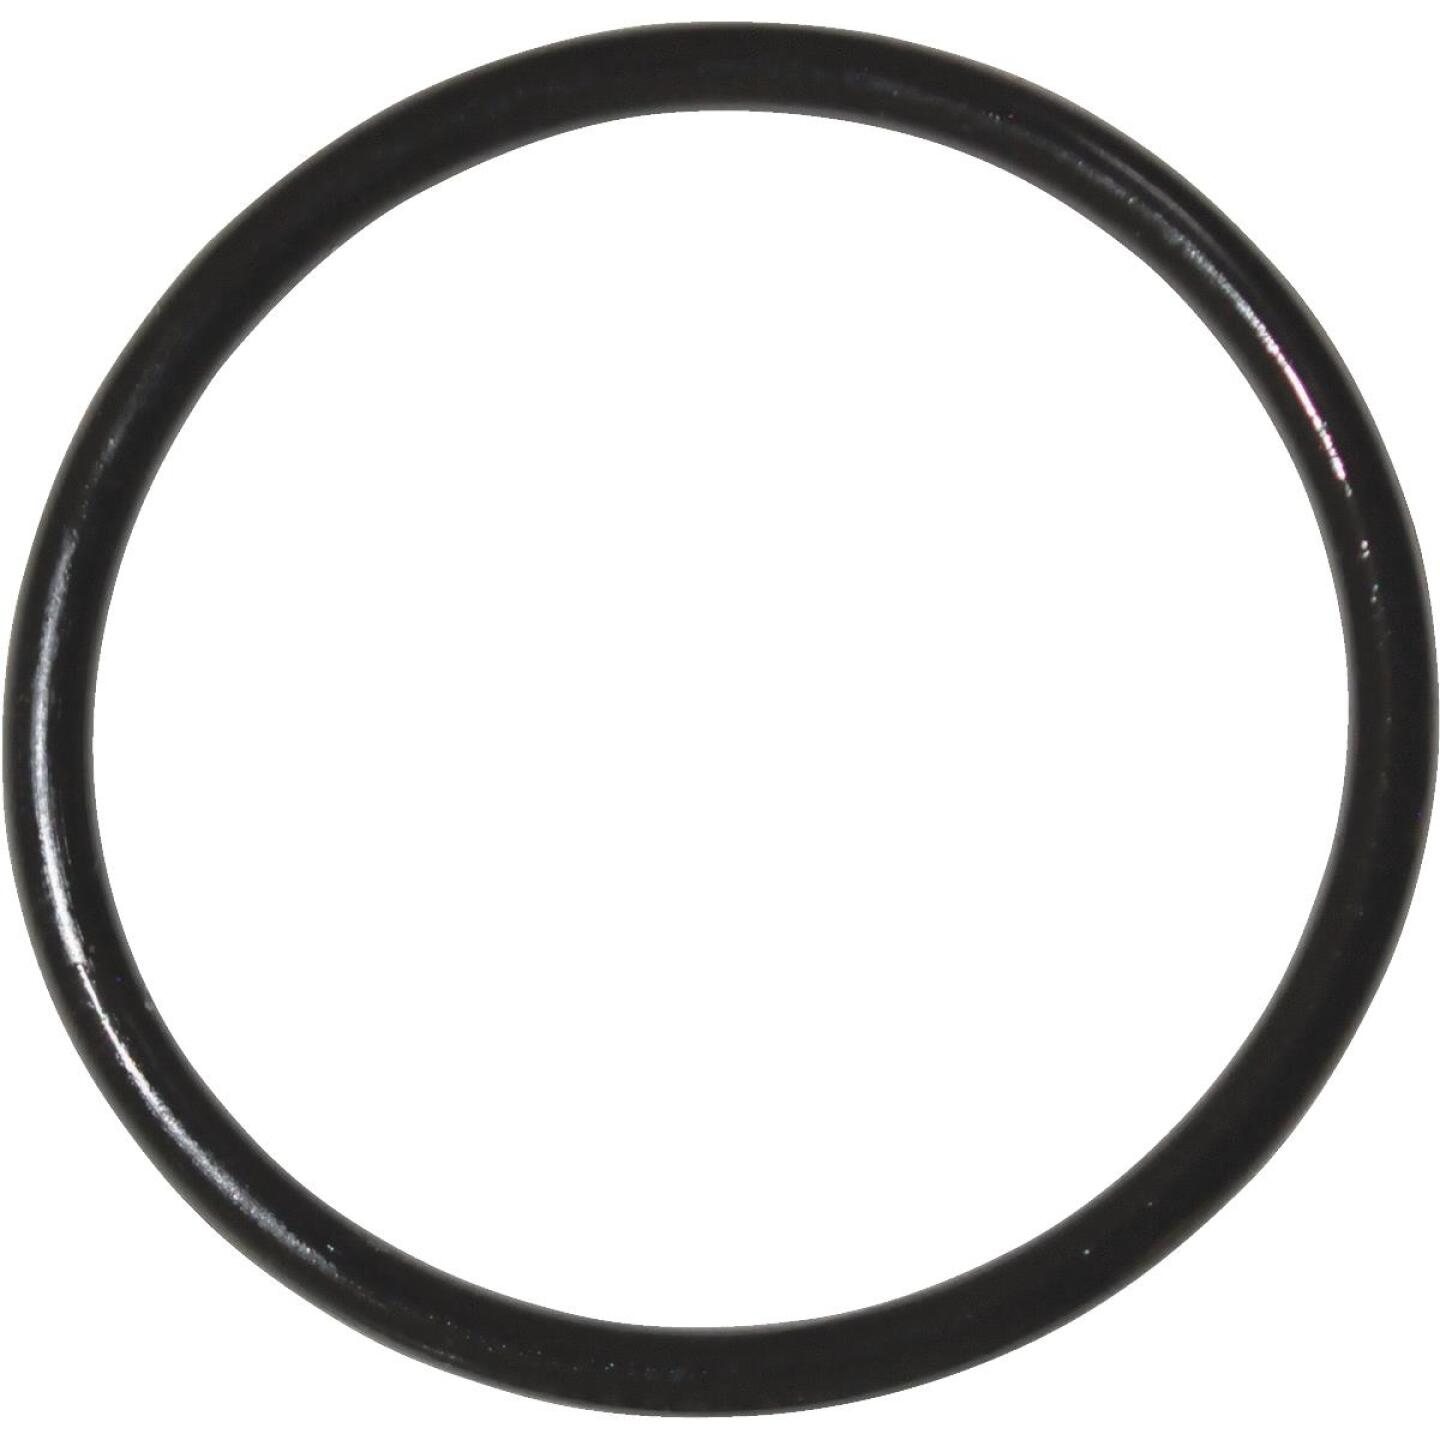 Danco #76 1-3/8 In. x 1-9/16 In. Buna-N O-Ring Image 1